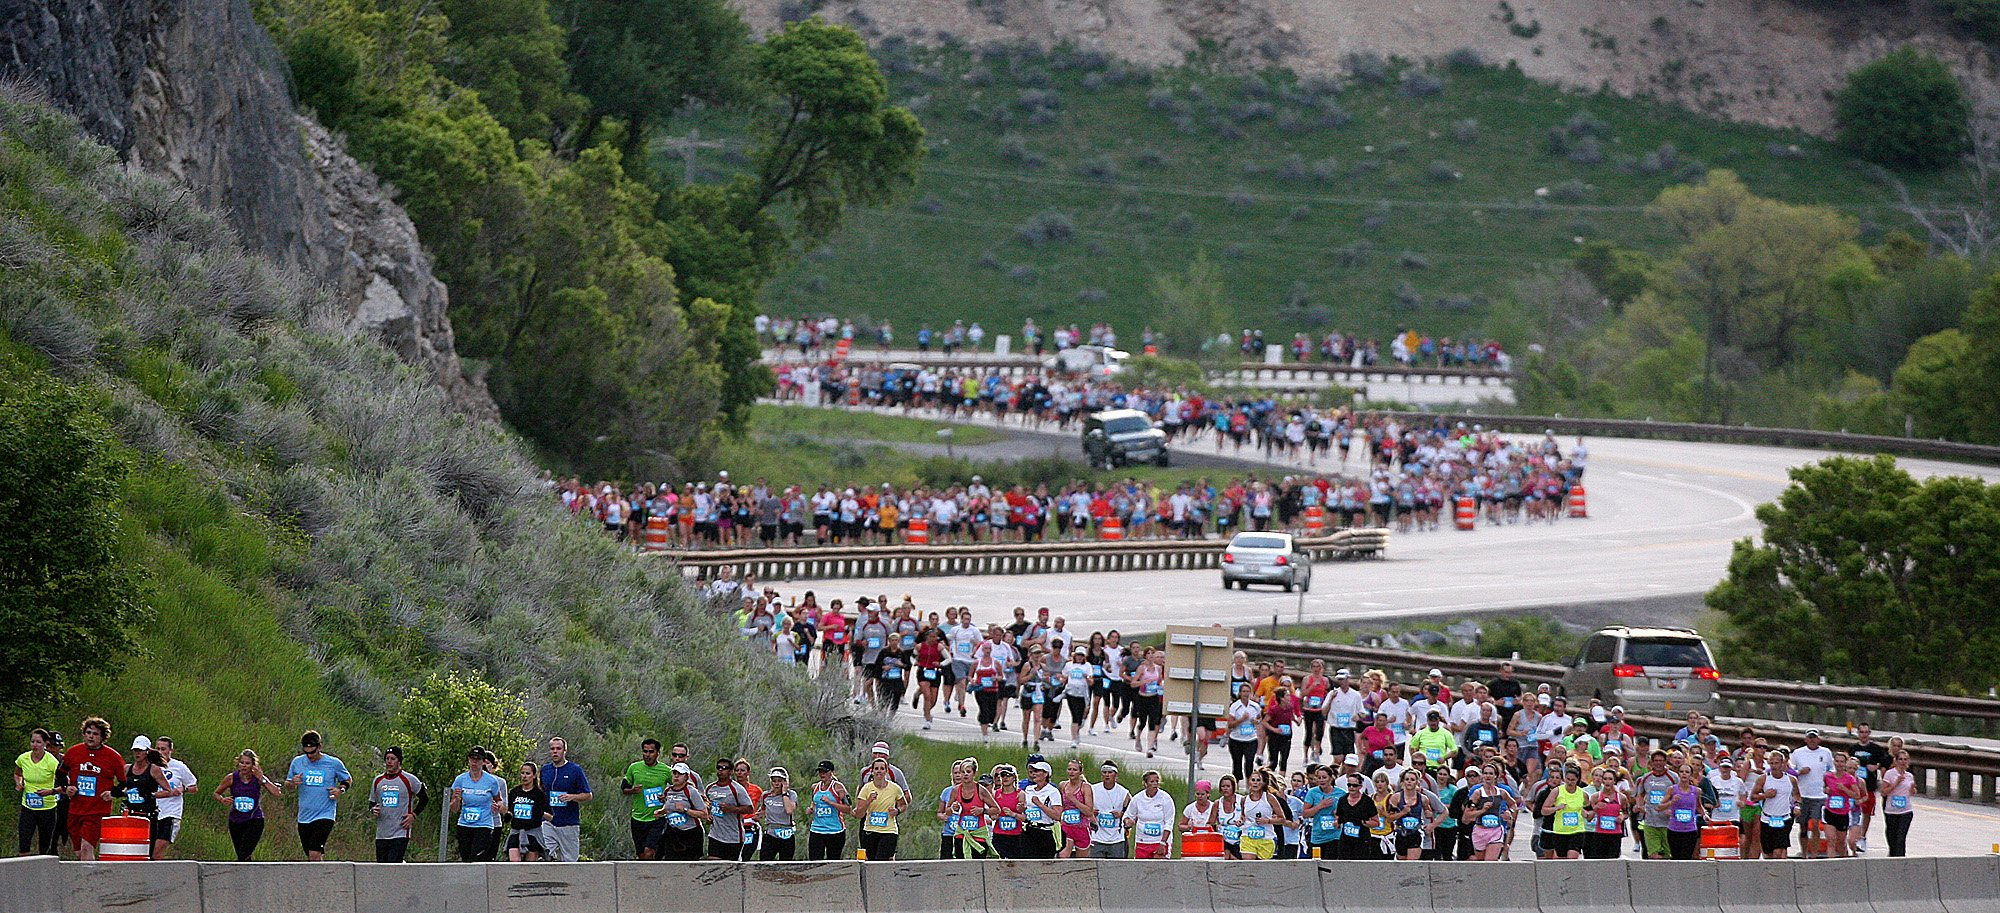 Participants in the 2011 Utah Valley Marathon run down Highway 189 in Provo Canyon Saturday, June 11, 2011. The Utah Valley Marathon has grown from 240 participants to nearly 6000 participants since the first marathon event in 2008. ANDREW VAN WAGENEN/Daily Herald